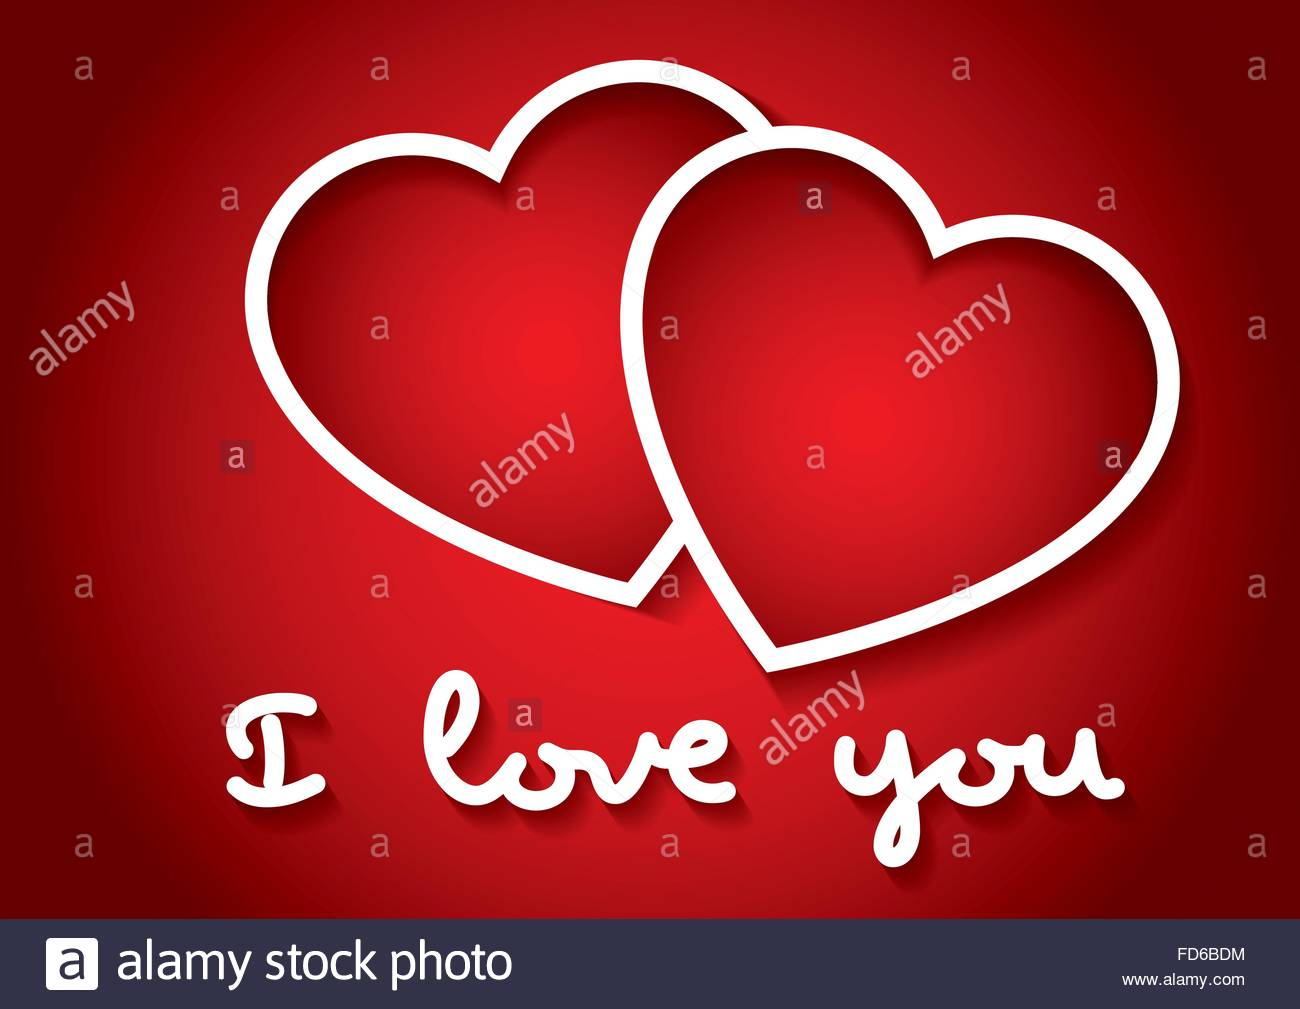 I love you words with two hearts in red. Valentines day, love ...